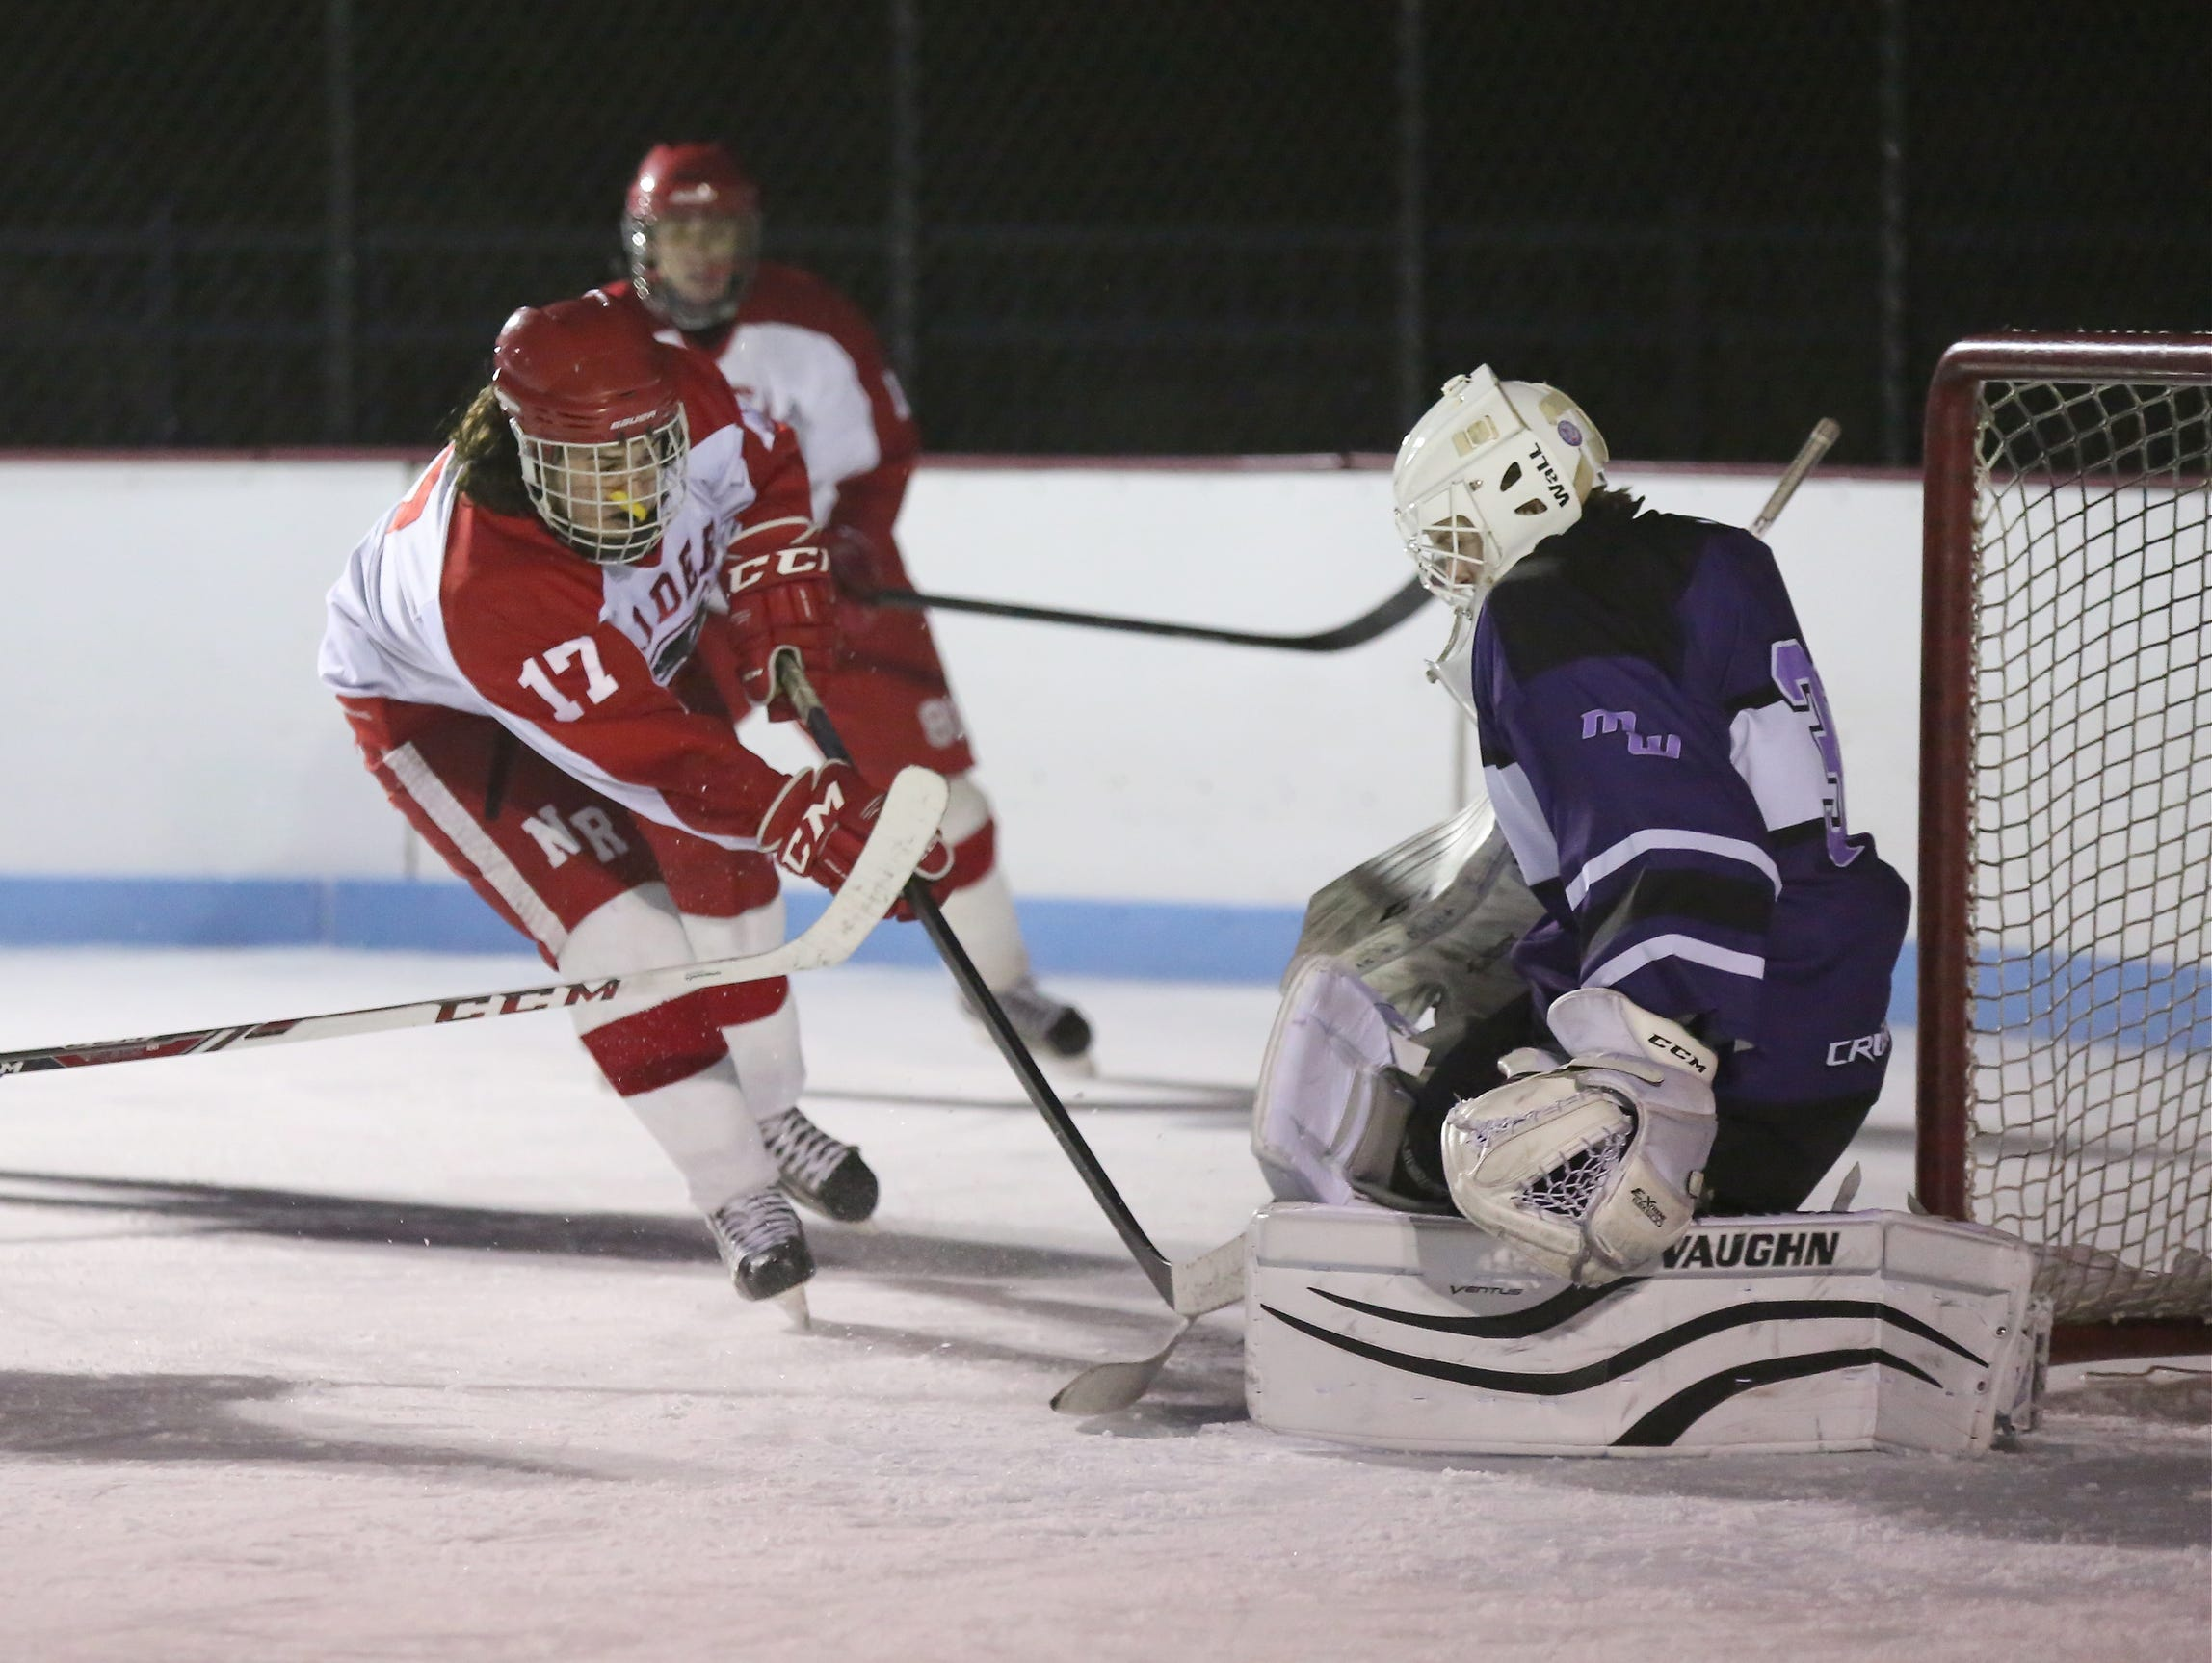 North Rockland's Charles Lowther (17) scores on Monroe-Woodbury goalie Dan Dorney during the first annual Winter Classic Hockey Tournament at the Bear Mountain Ice Rink in Tompkins Cove on Friday, Dec. 18, 2015.